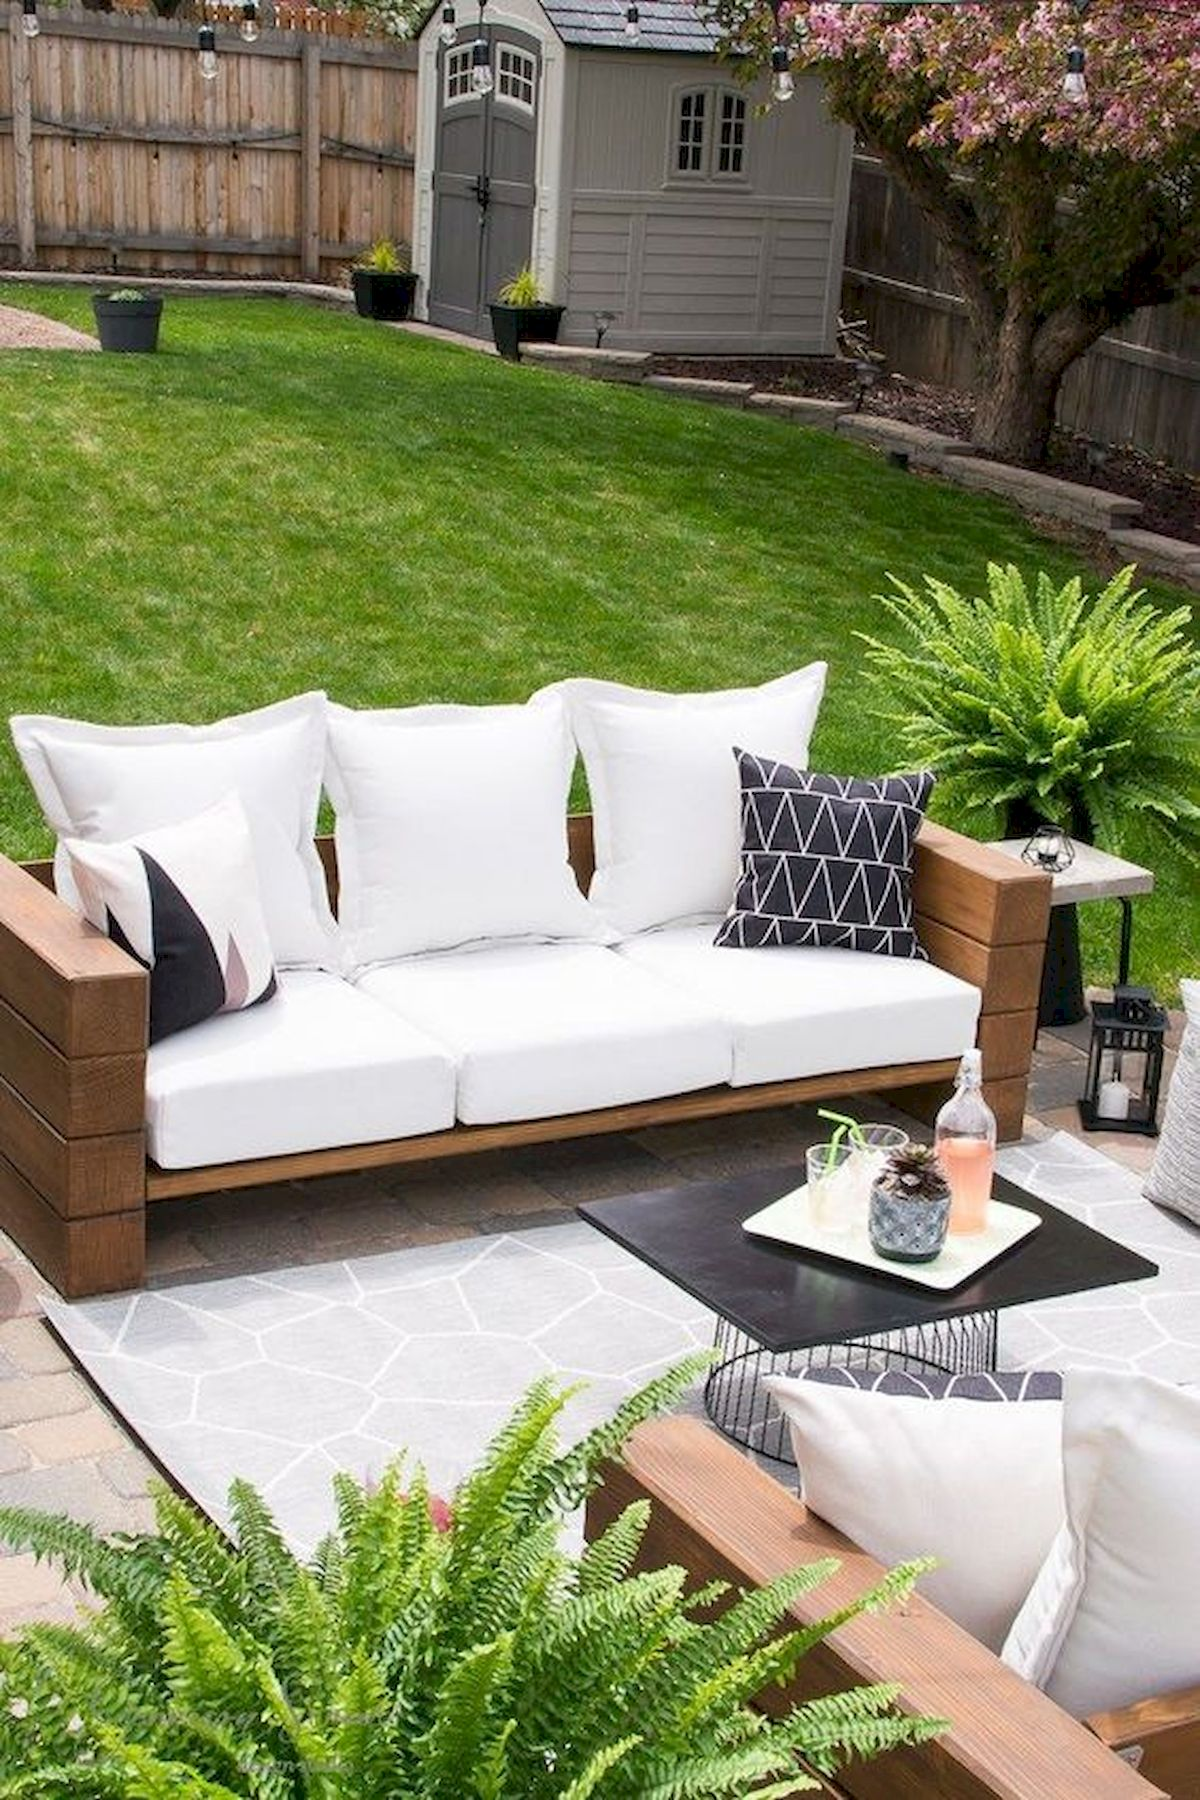 33 Best Diy Patio Furniture Ideas 22 33decor